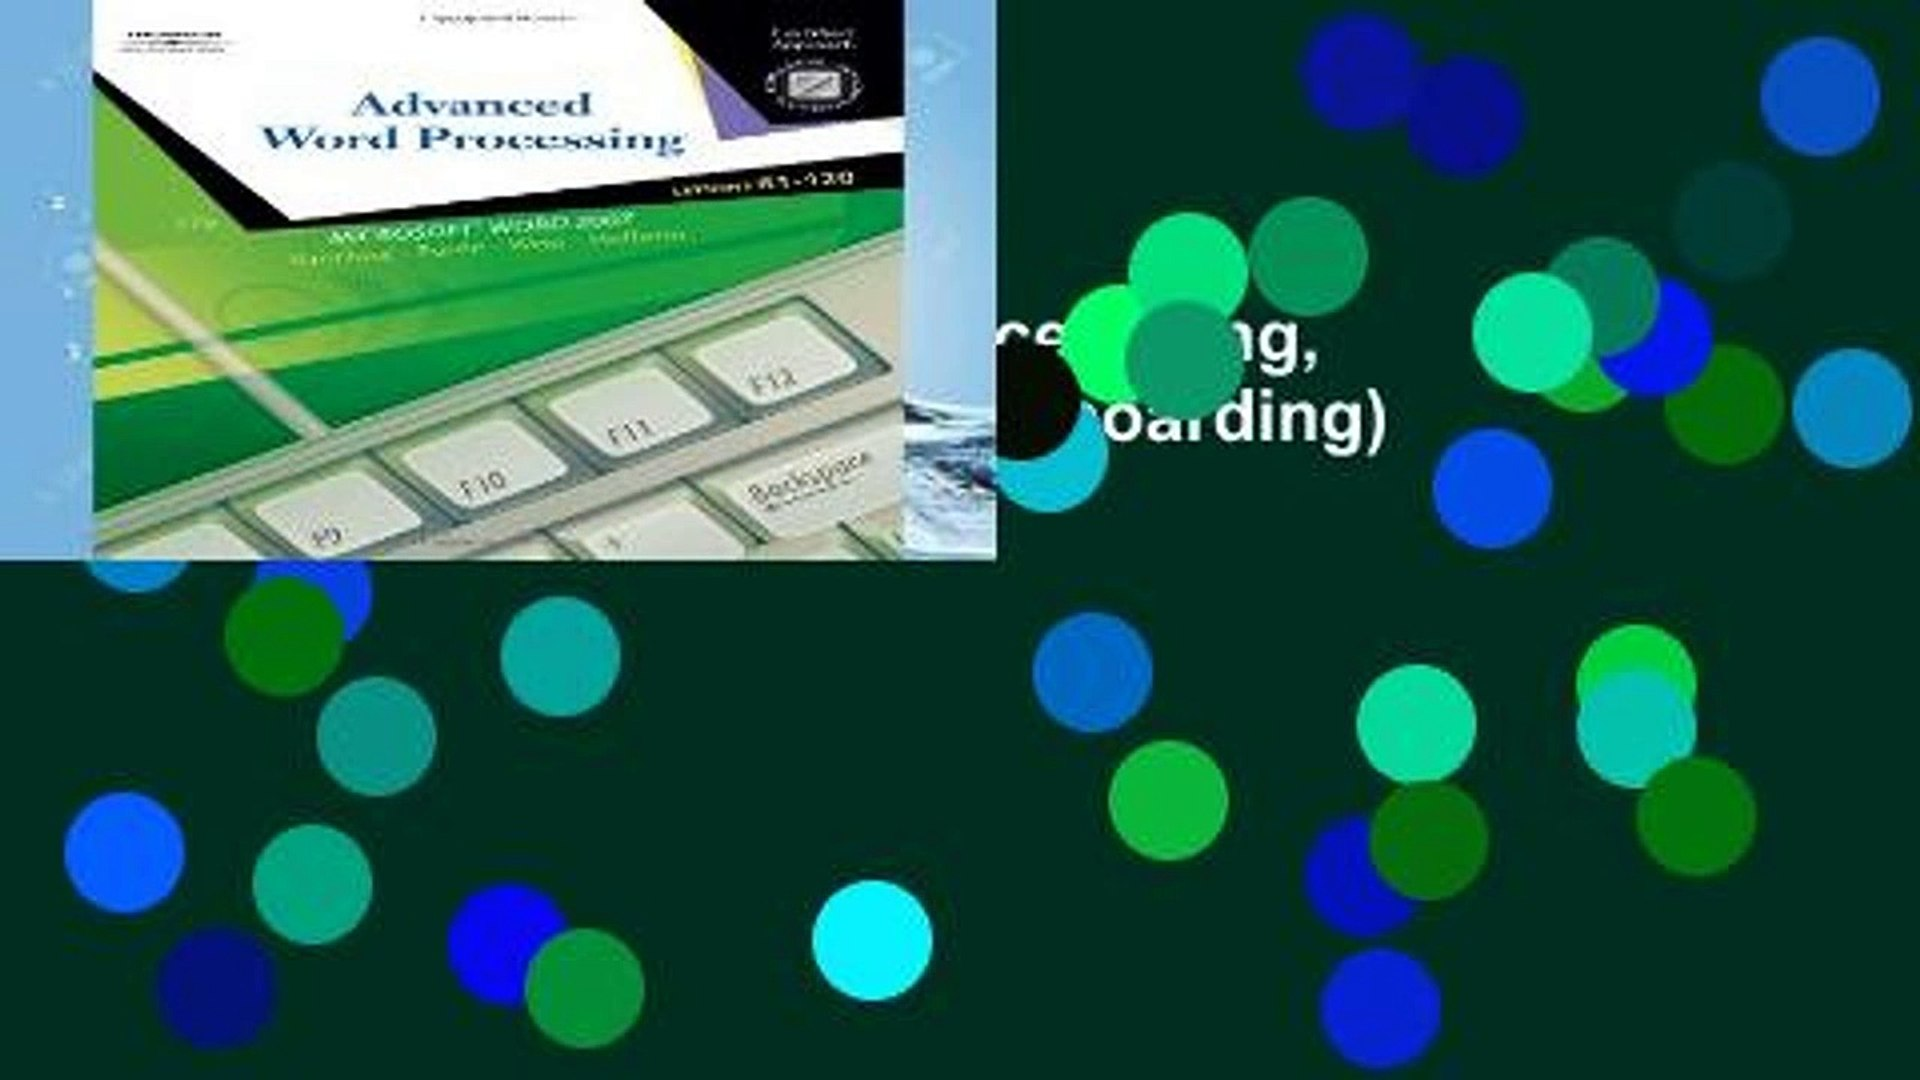 Ebook Advanced Word Processsing, Lessons 61-120 (College Keyboarding) Full